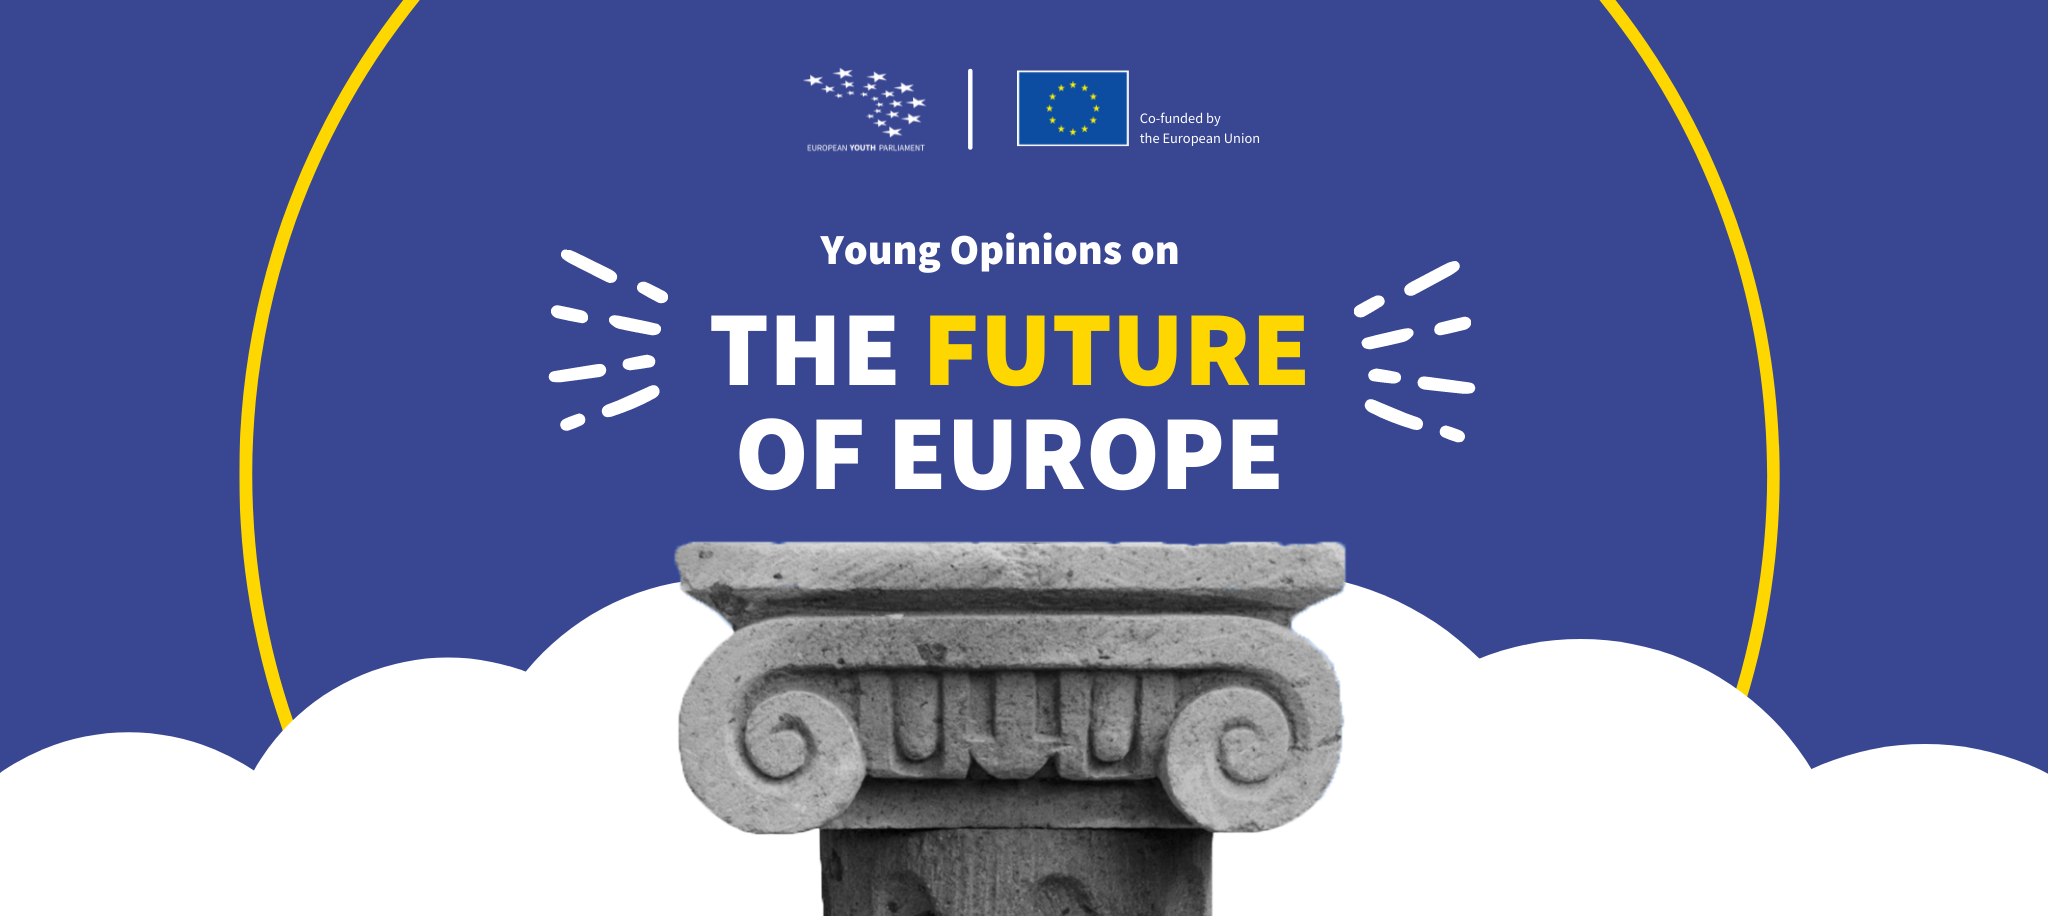 Young Opinions on the Future of Europe